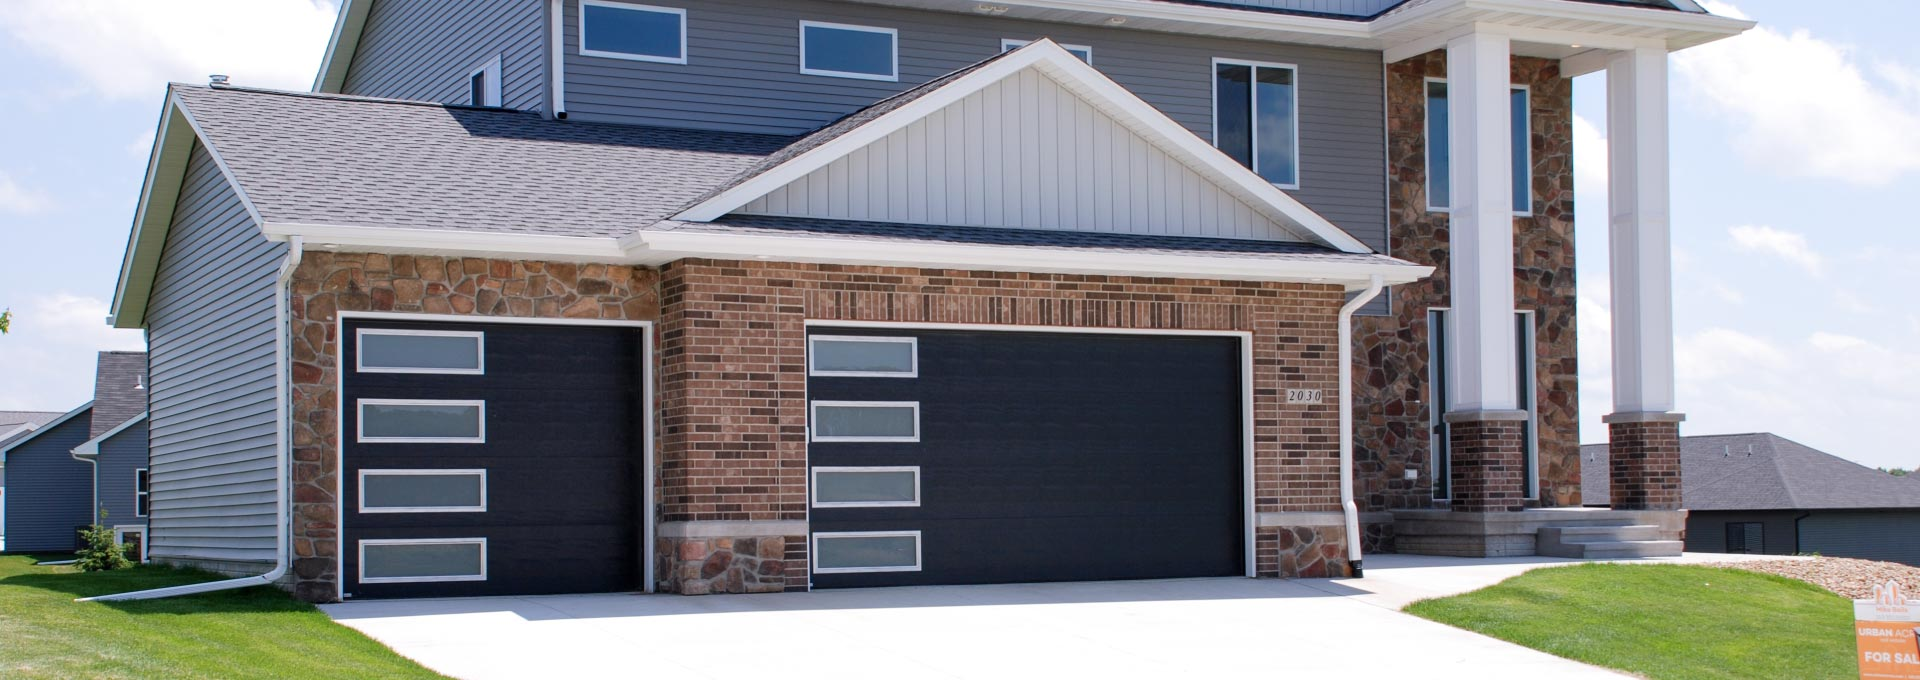 Premium insulated steel garage doors.